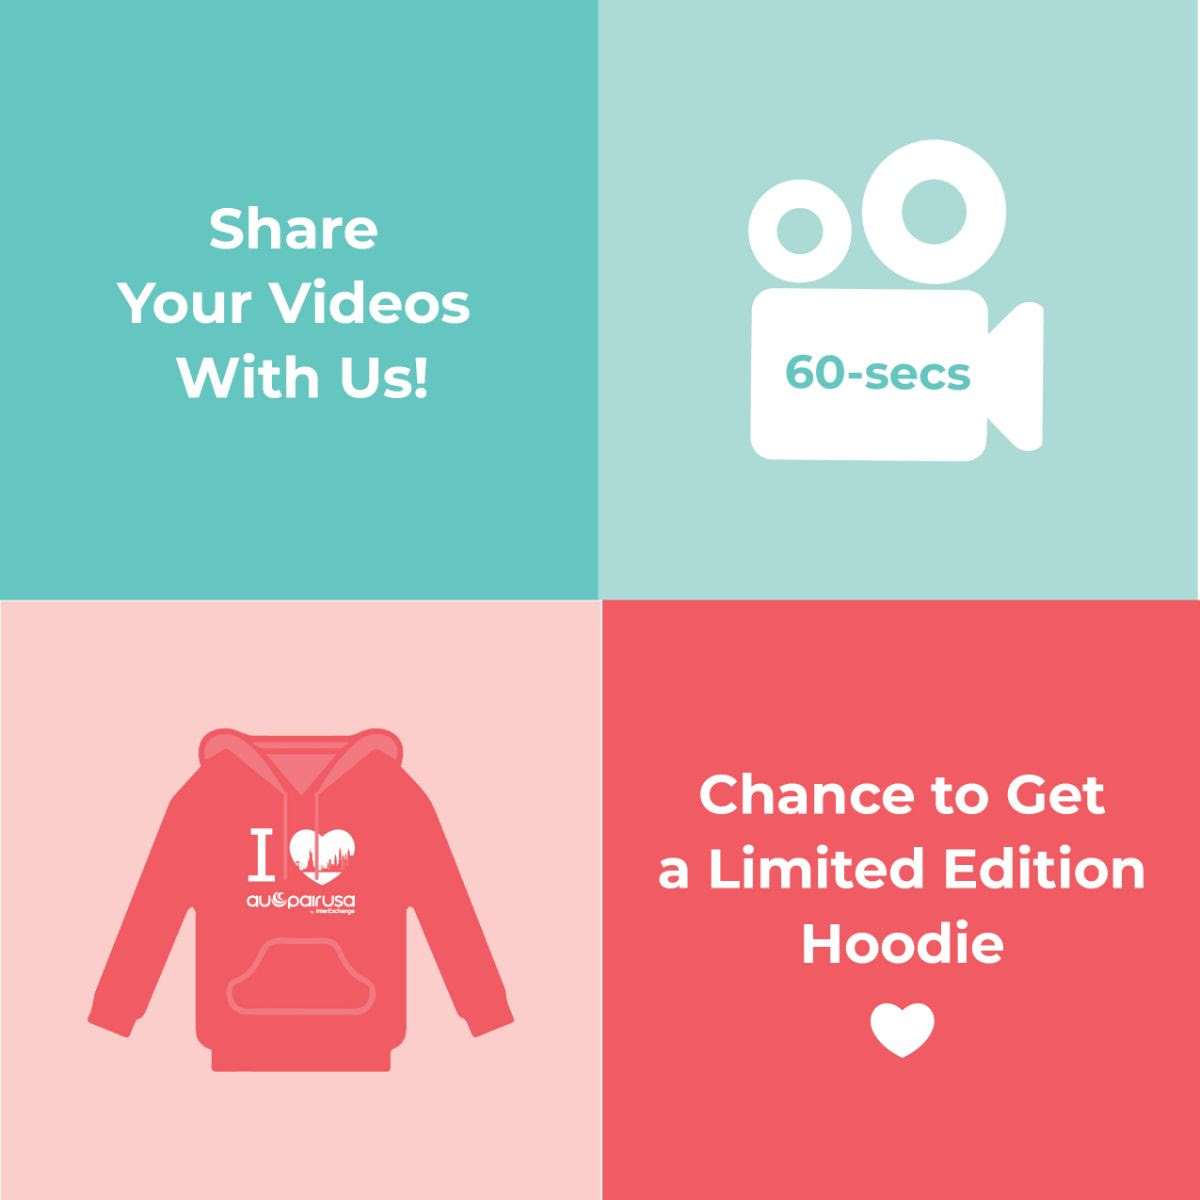 Share your videos with us for a chance to receive a limited edition hoodie!